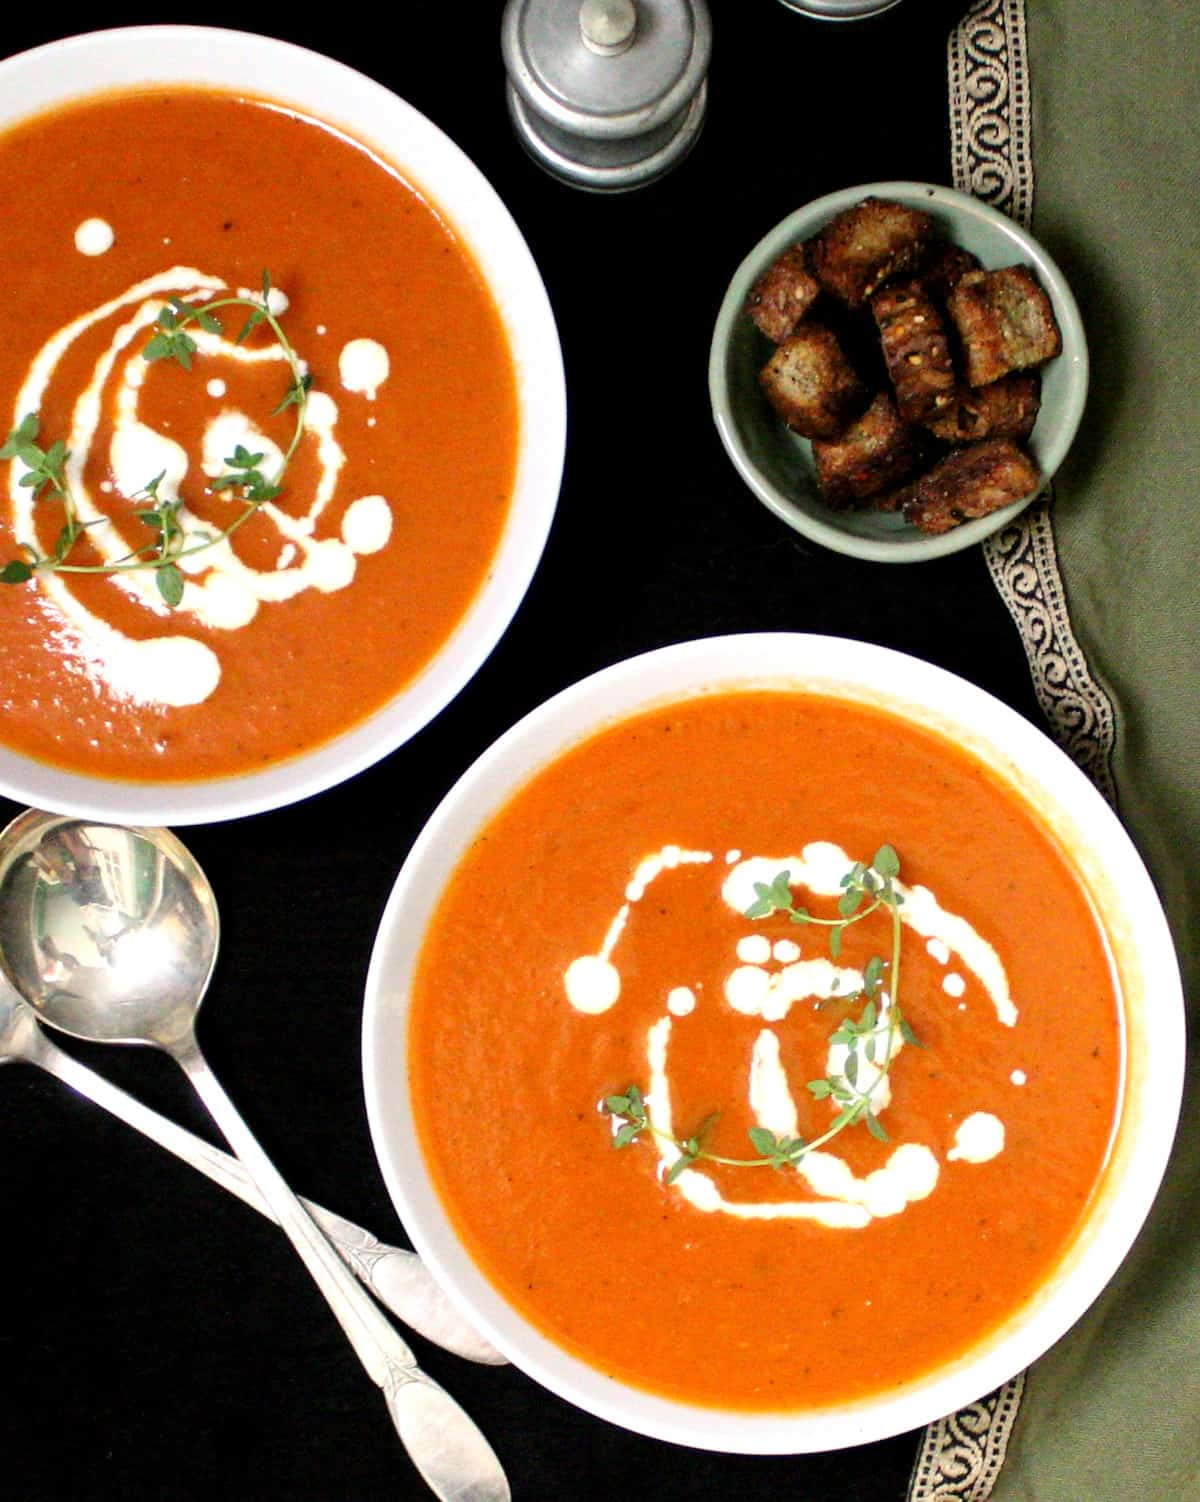 An overhead shot of two bowls of dairyfree vegan tomato soup with thyme, cashew cream, croutons and silver spoons.